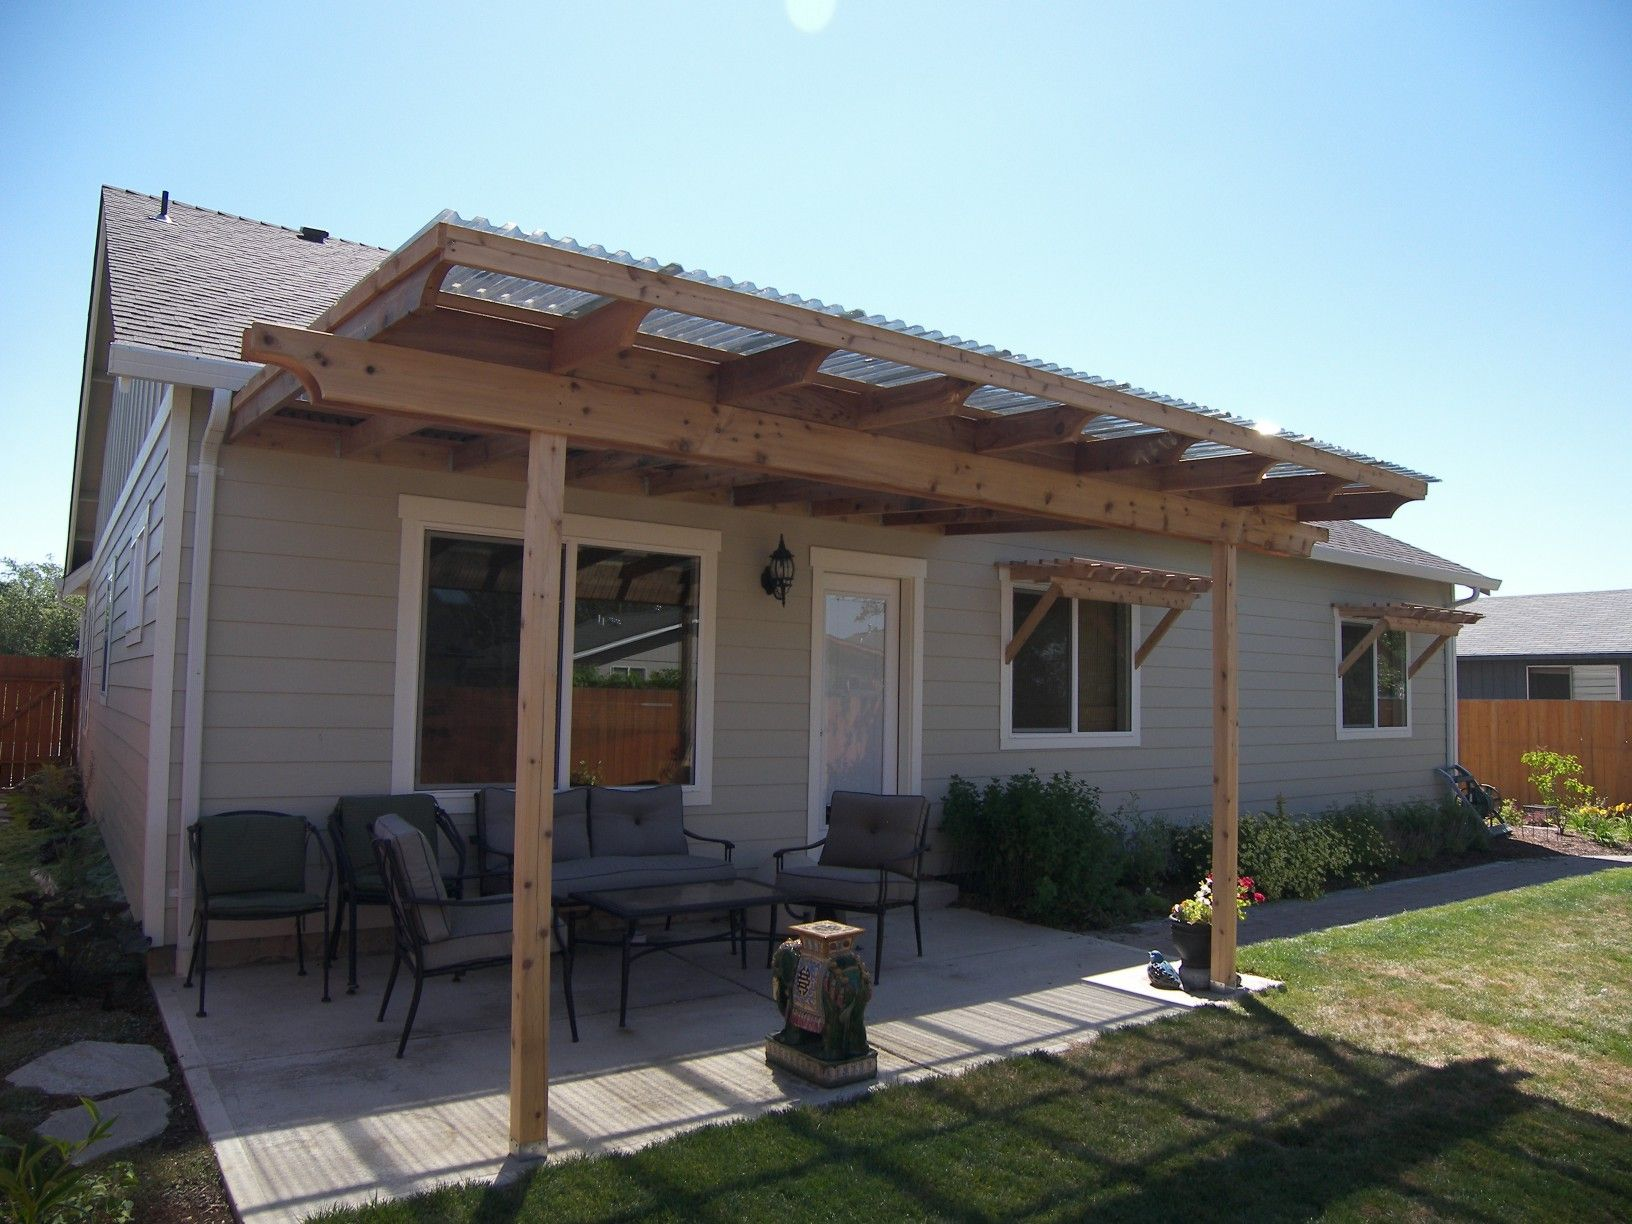 Suntuf Patio Cover, Corvallis at